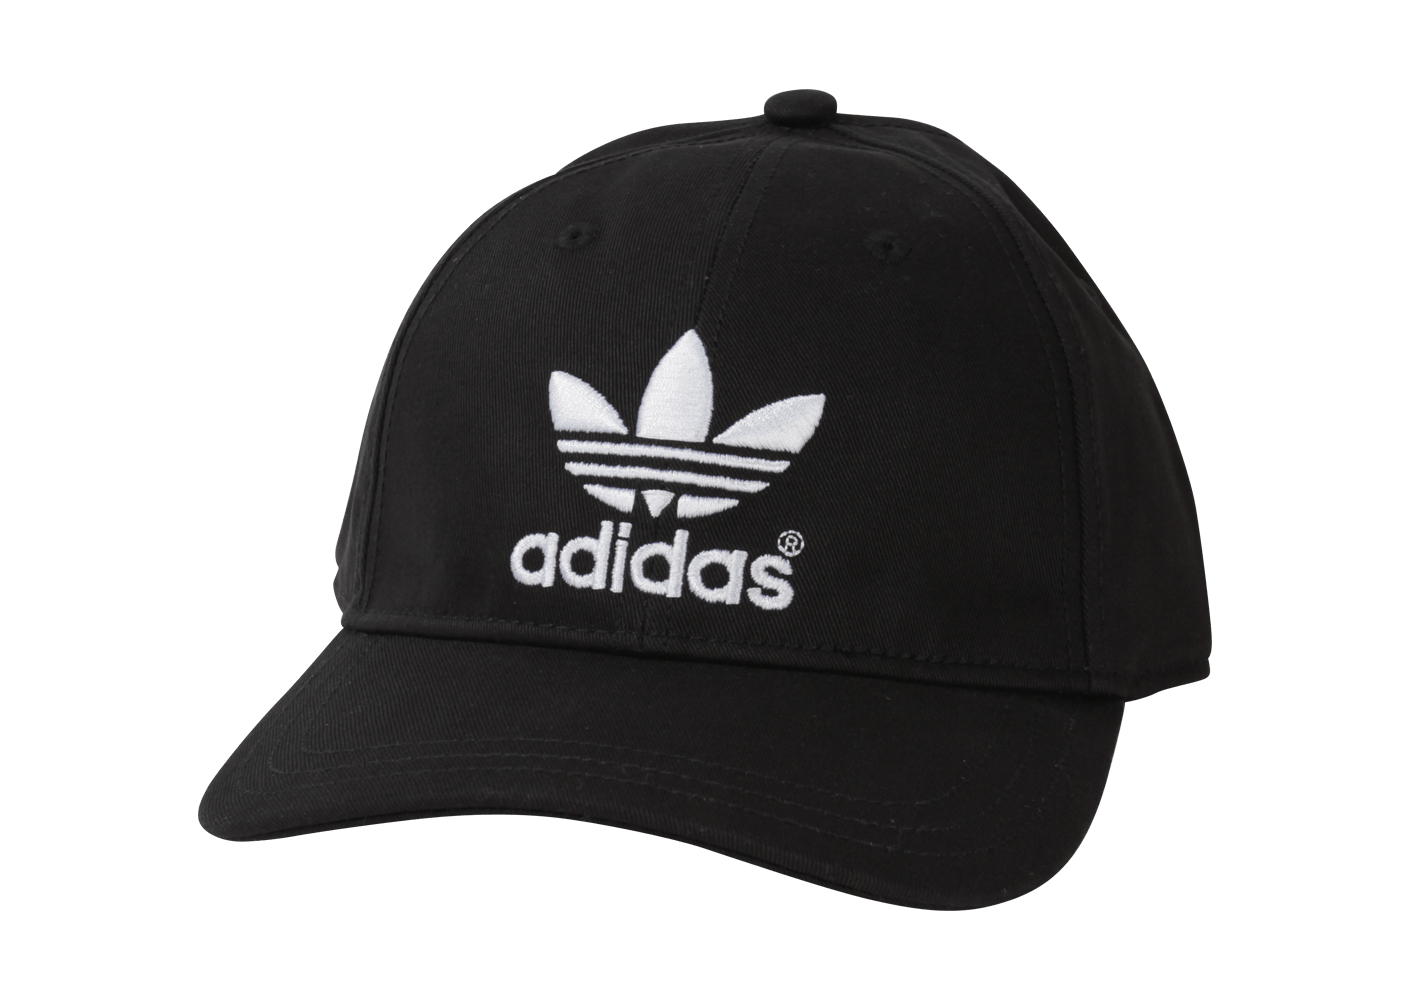 casquette adidas blanche femme